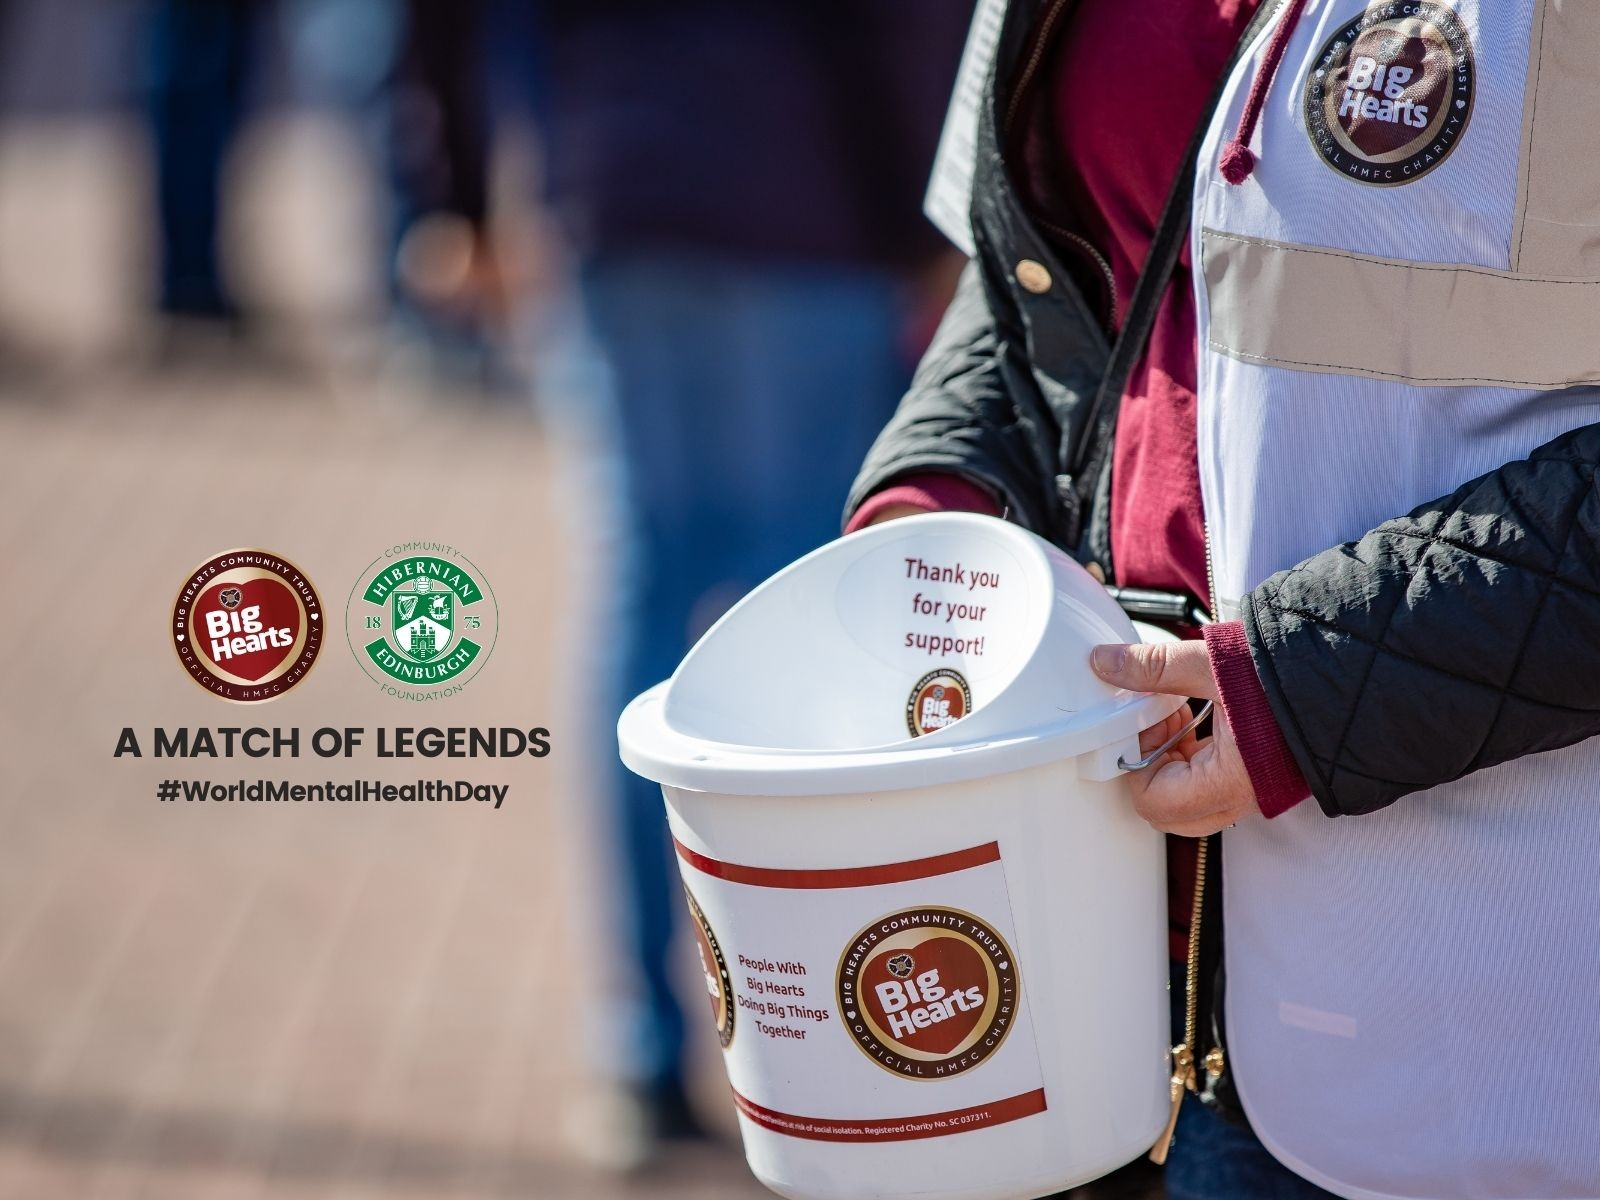 » MATCH INFO FOR SUPPORTERS: EDINBURGH CHARITY DERBY